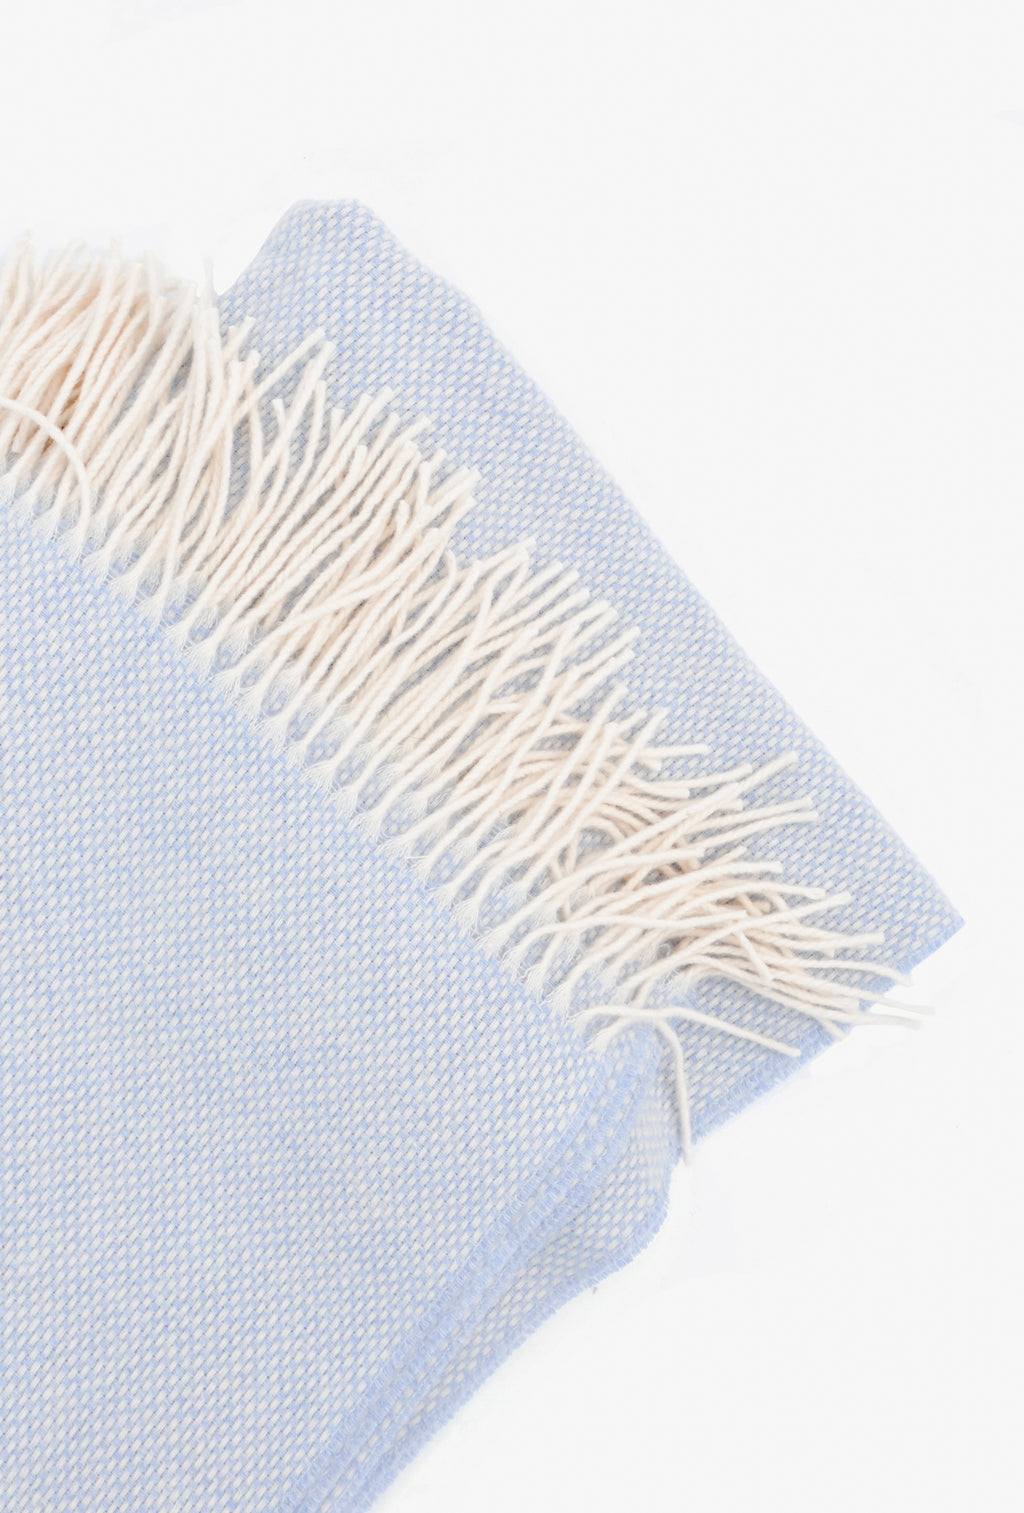 1: Basketweave Wool-Cashmere Throw in  - LEIF